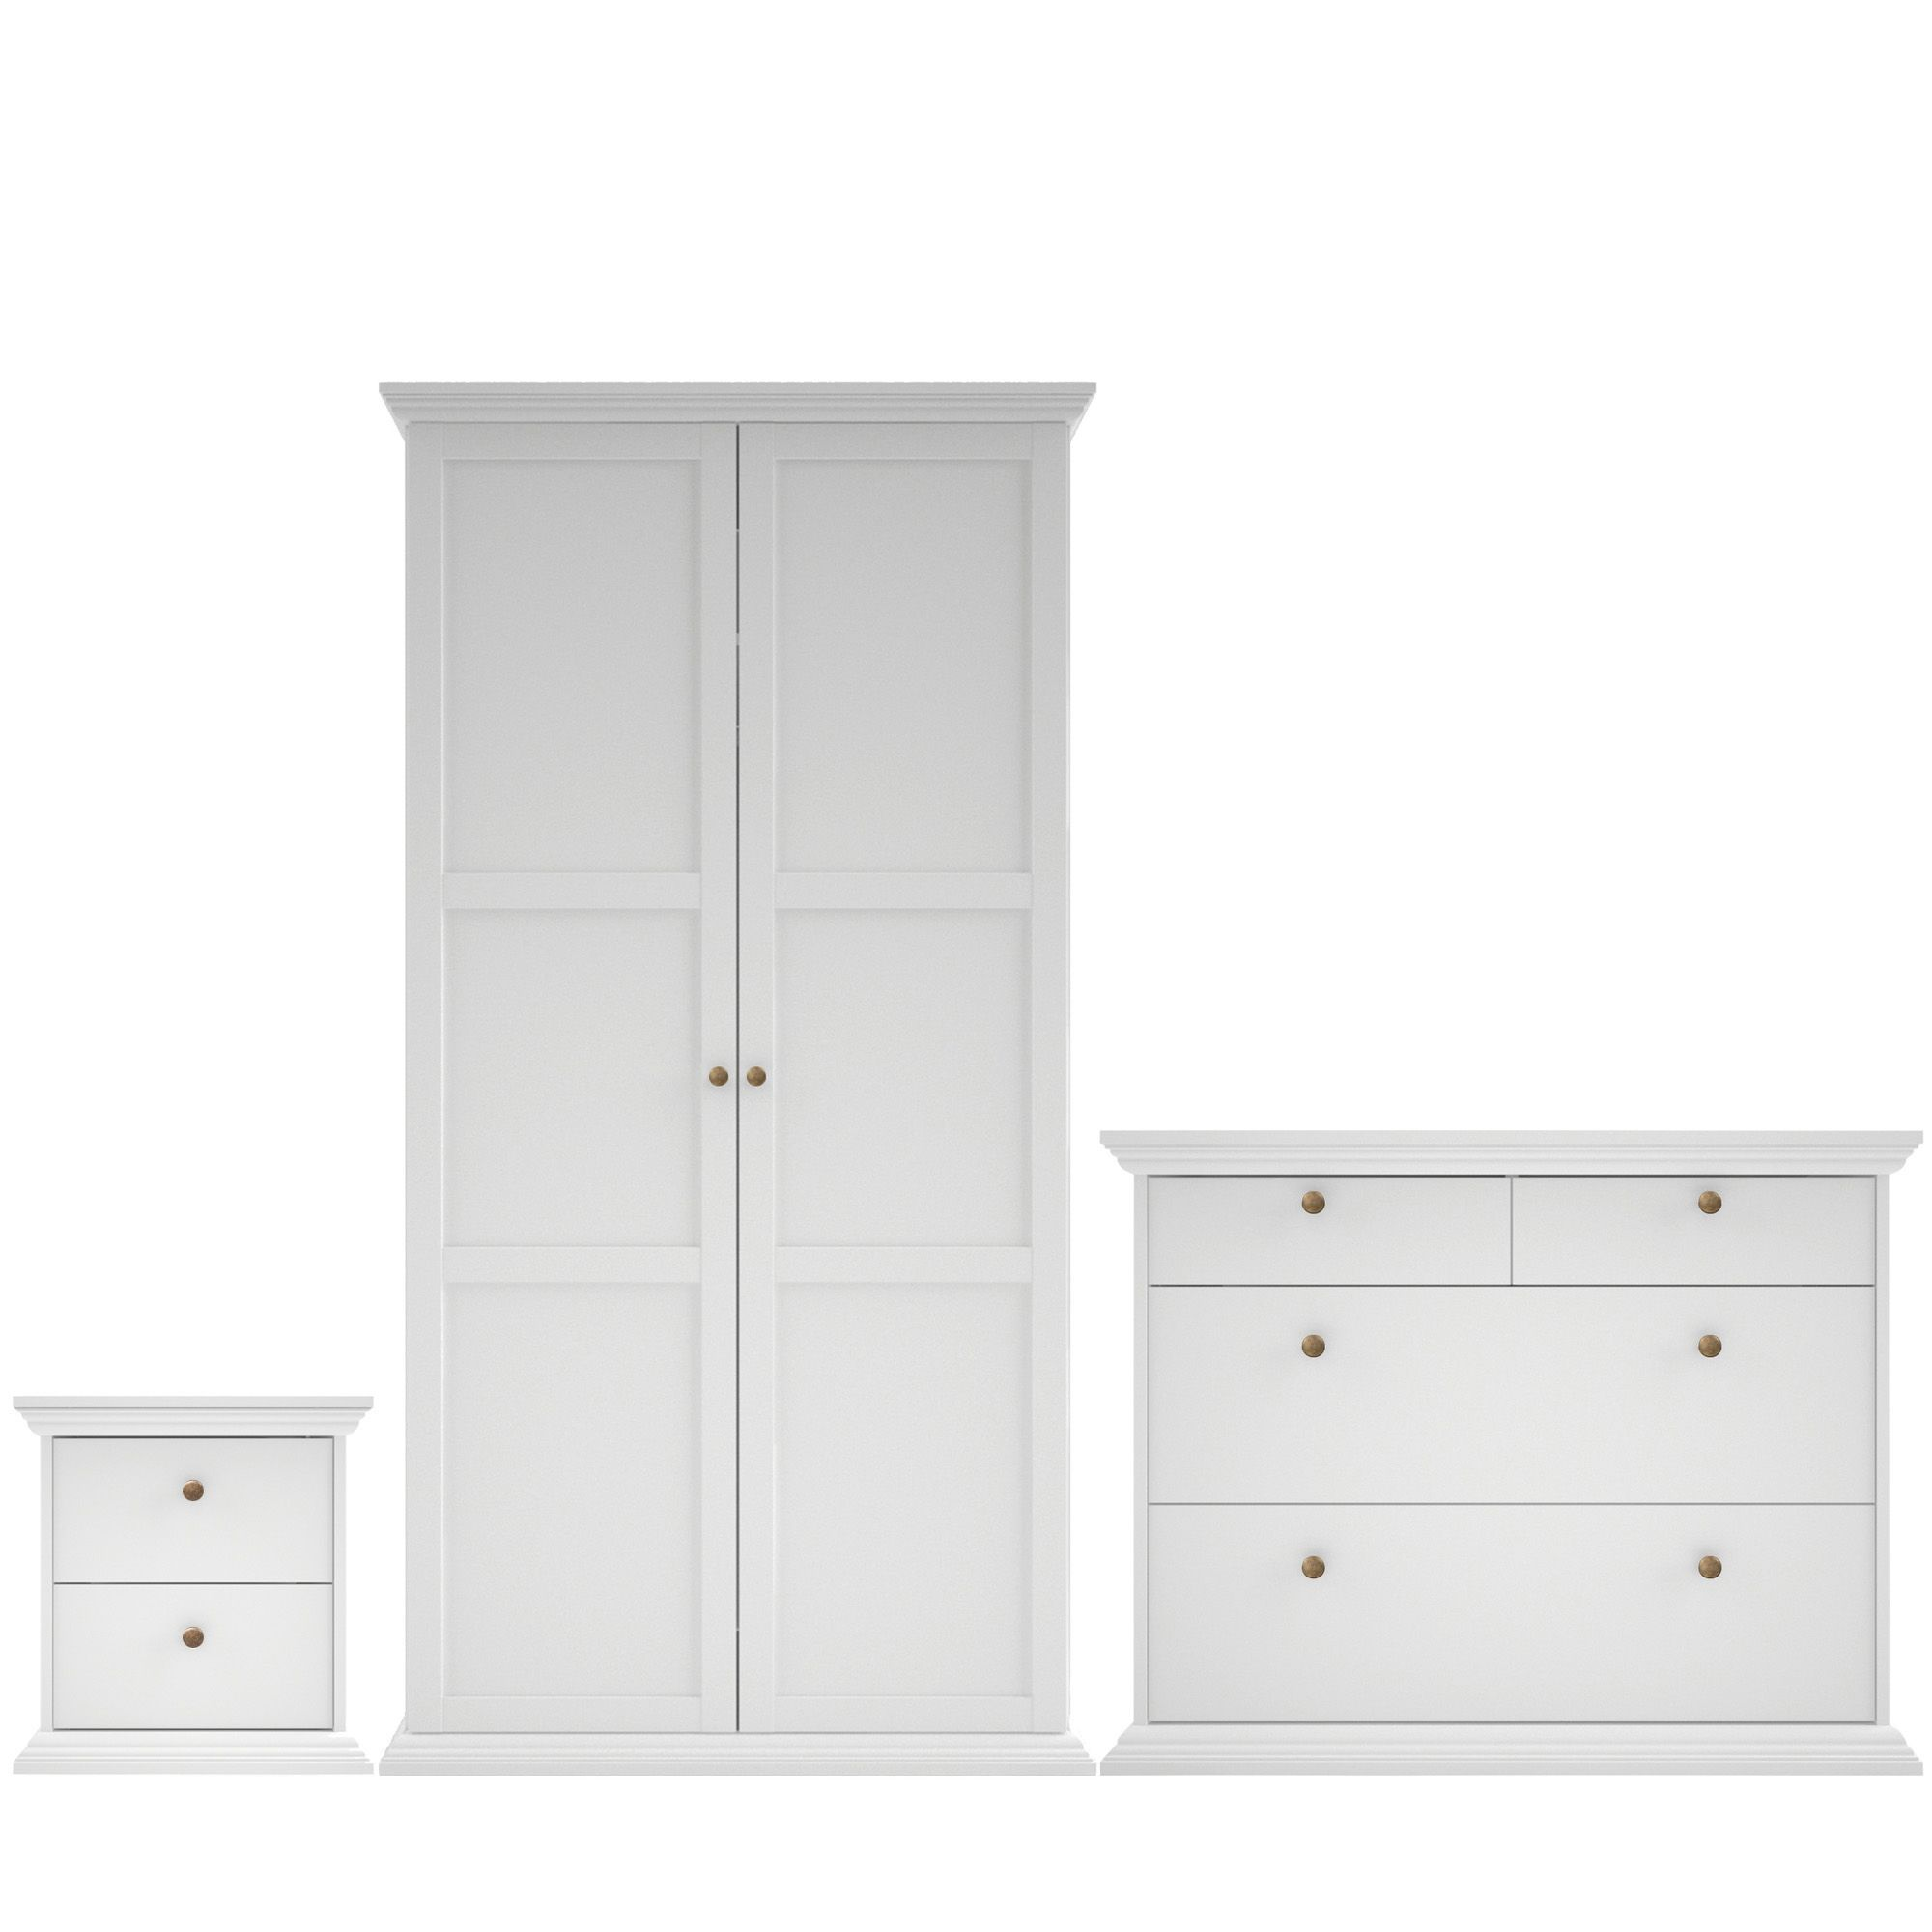 Isabella White & Matt 3 Piece Bedroom Furniture Set | Departments ...